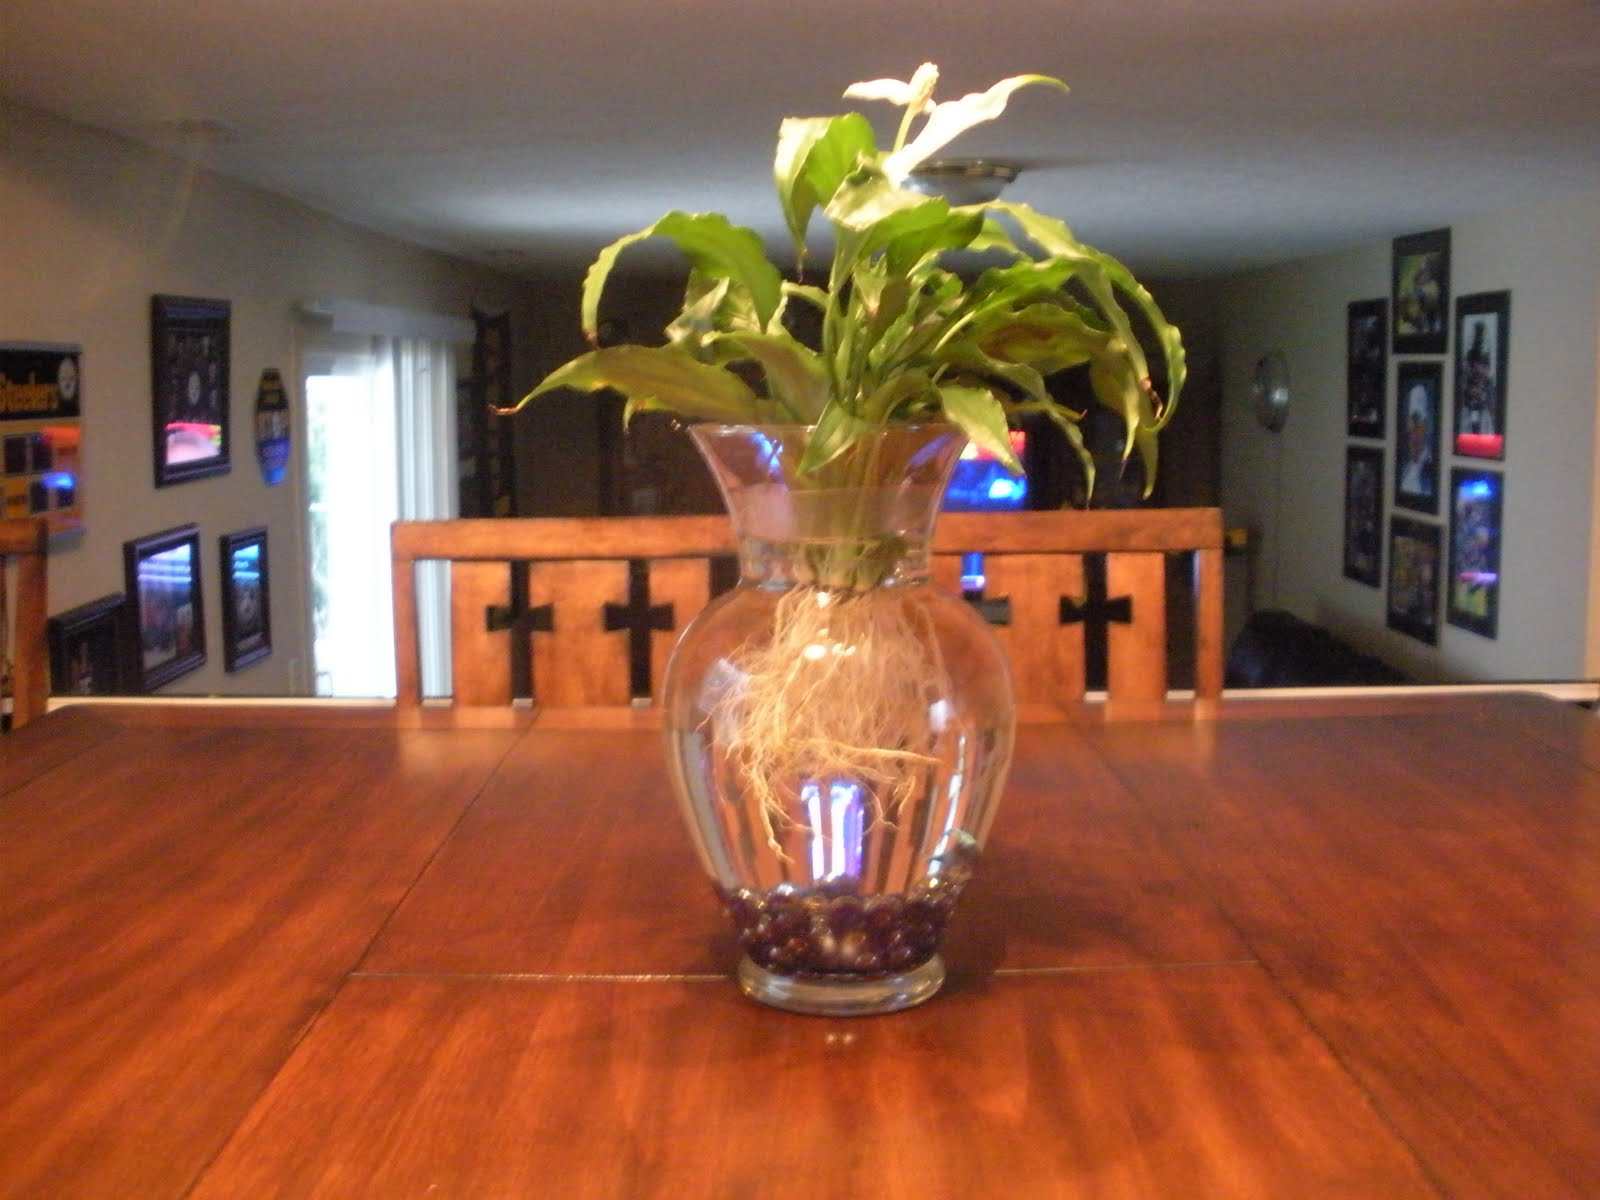 Working house mom wife lily vase fishbowl reviewsmspy